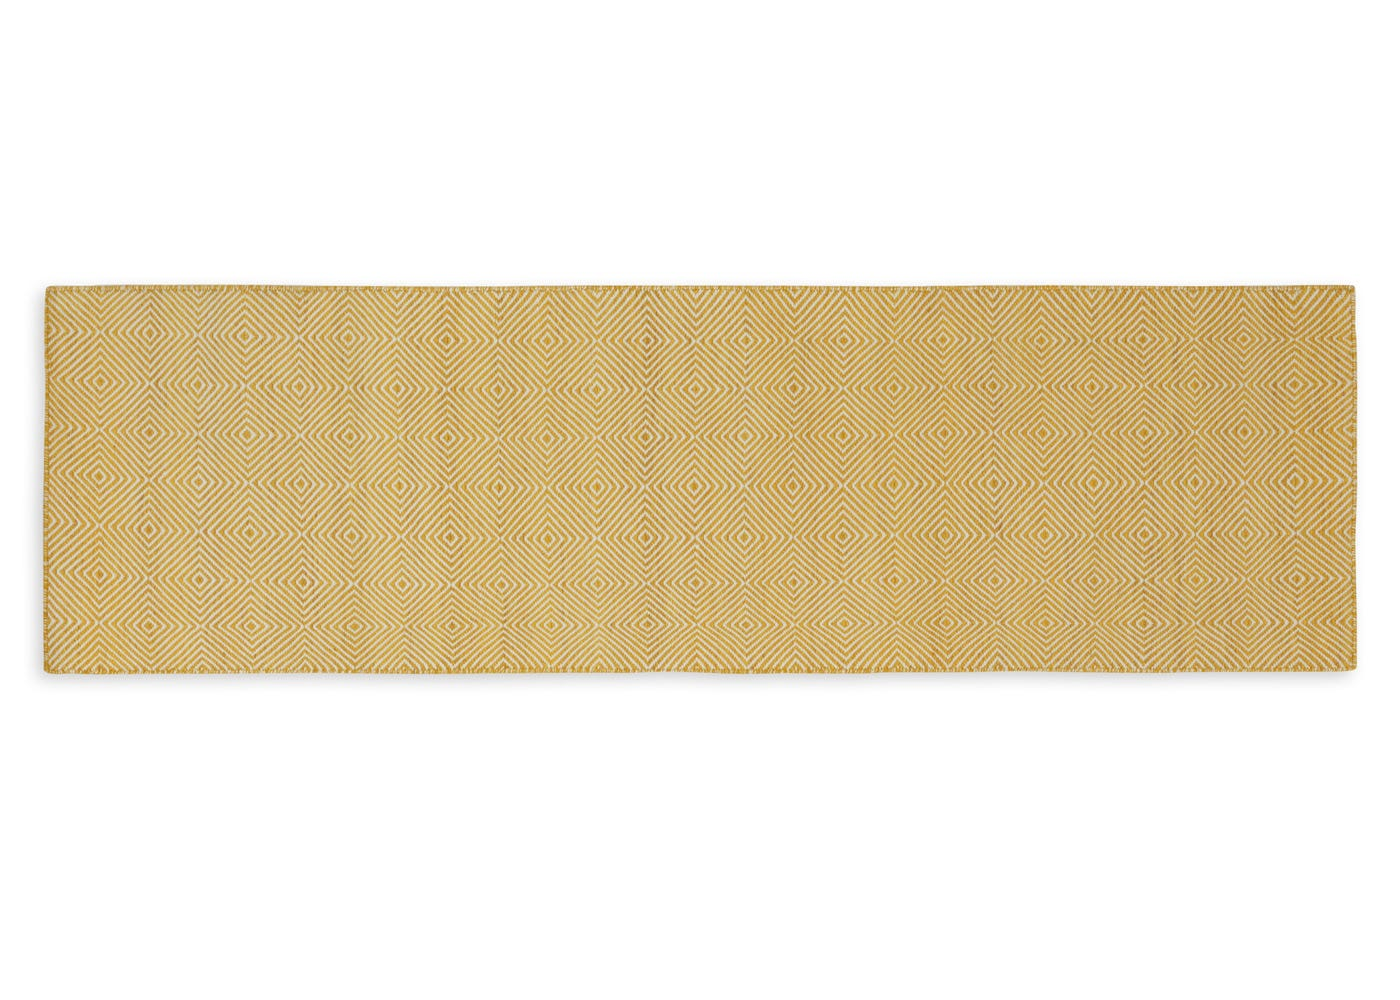 Heal's Romilly Recycled Runner Yellow 70 x 230cm